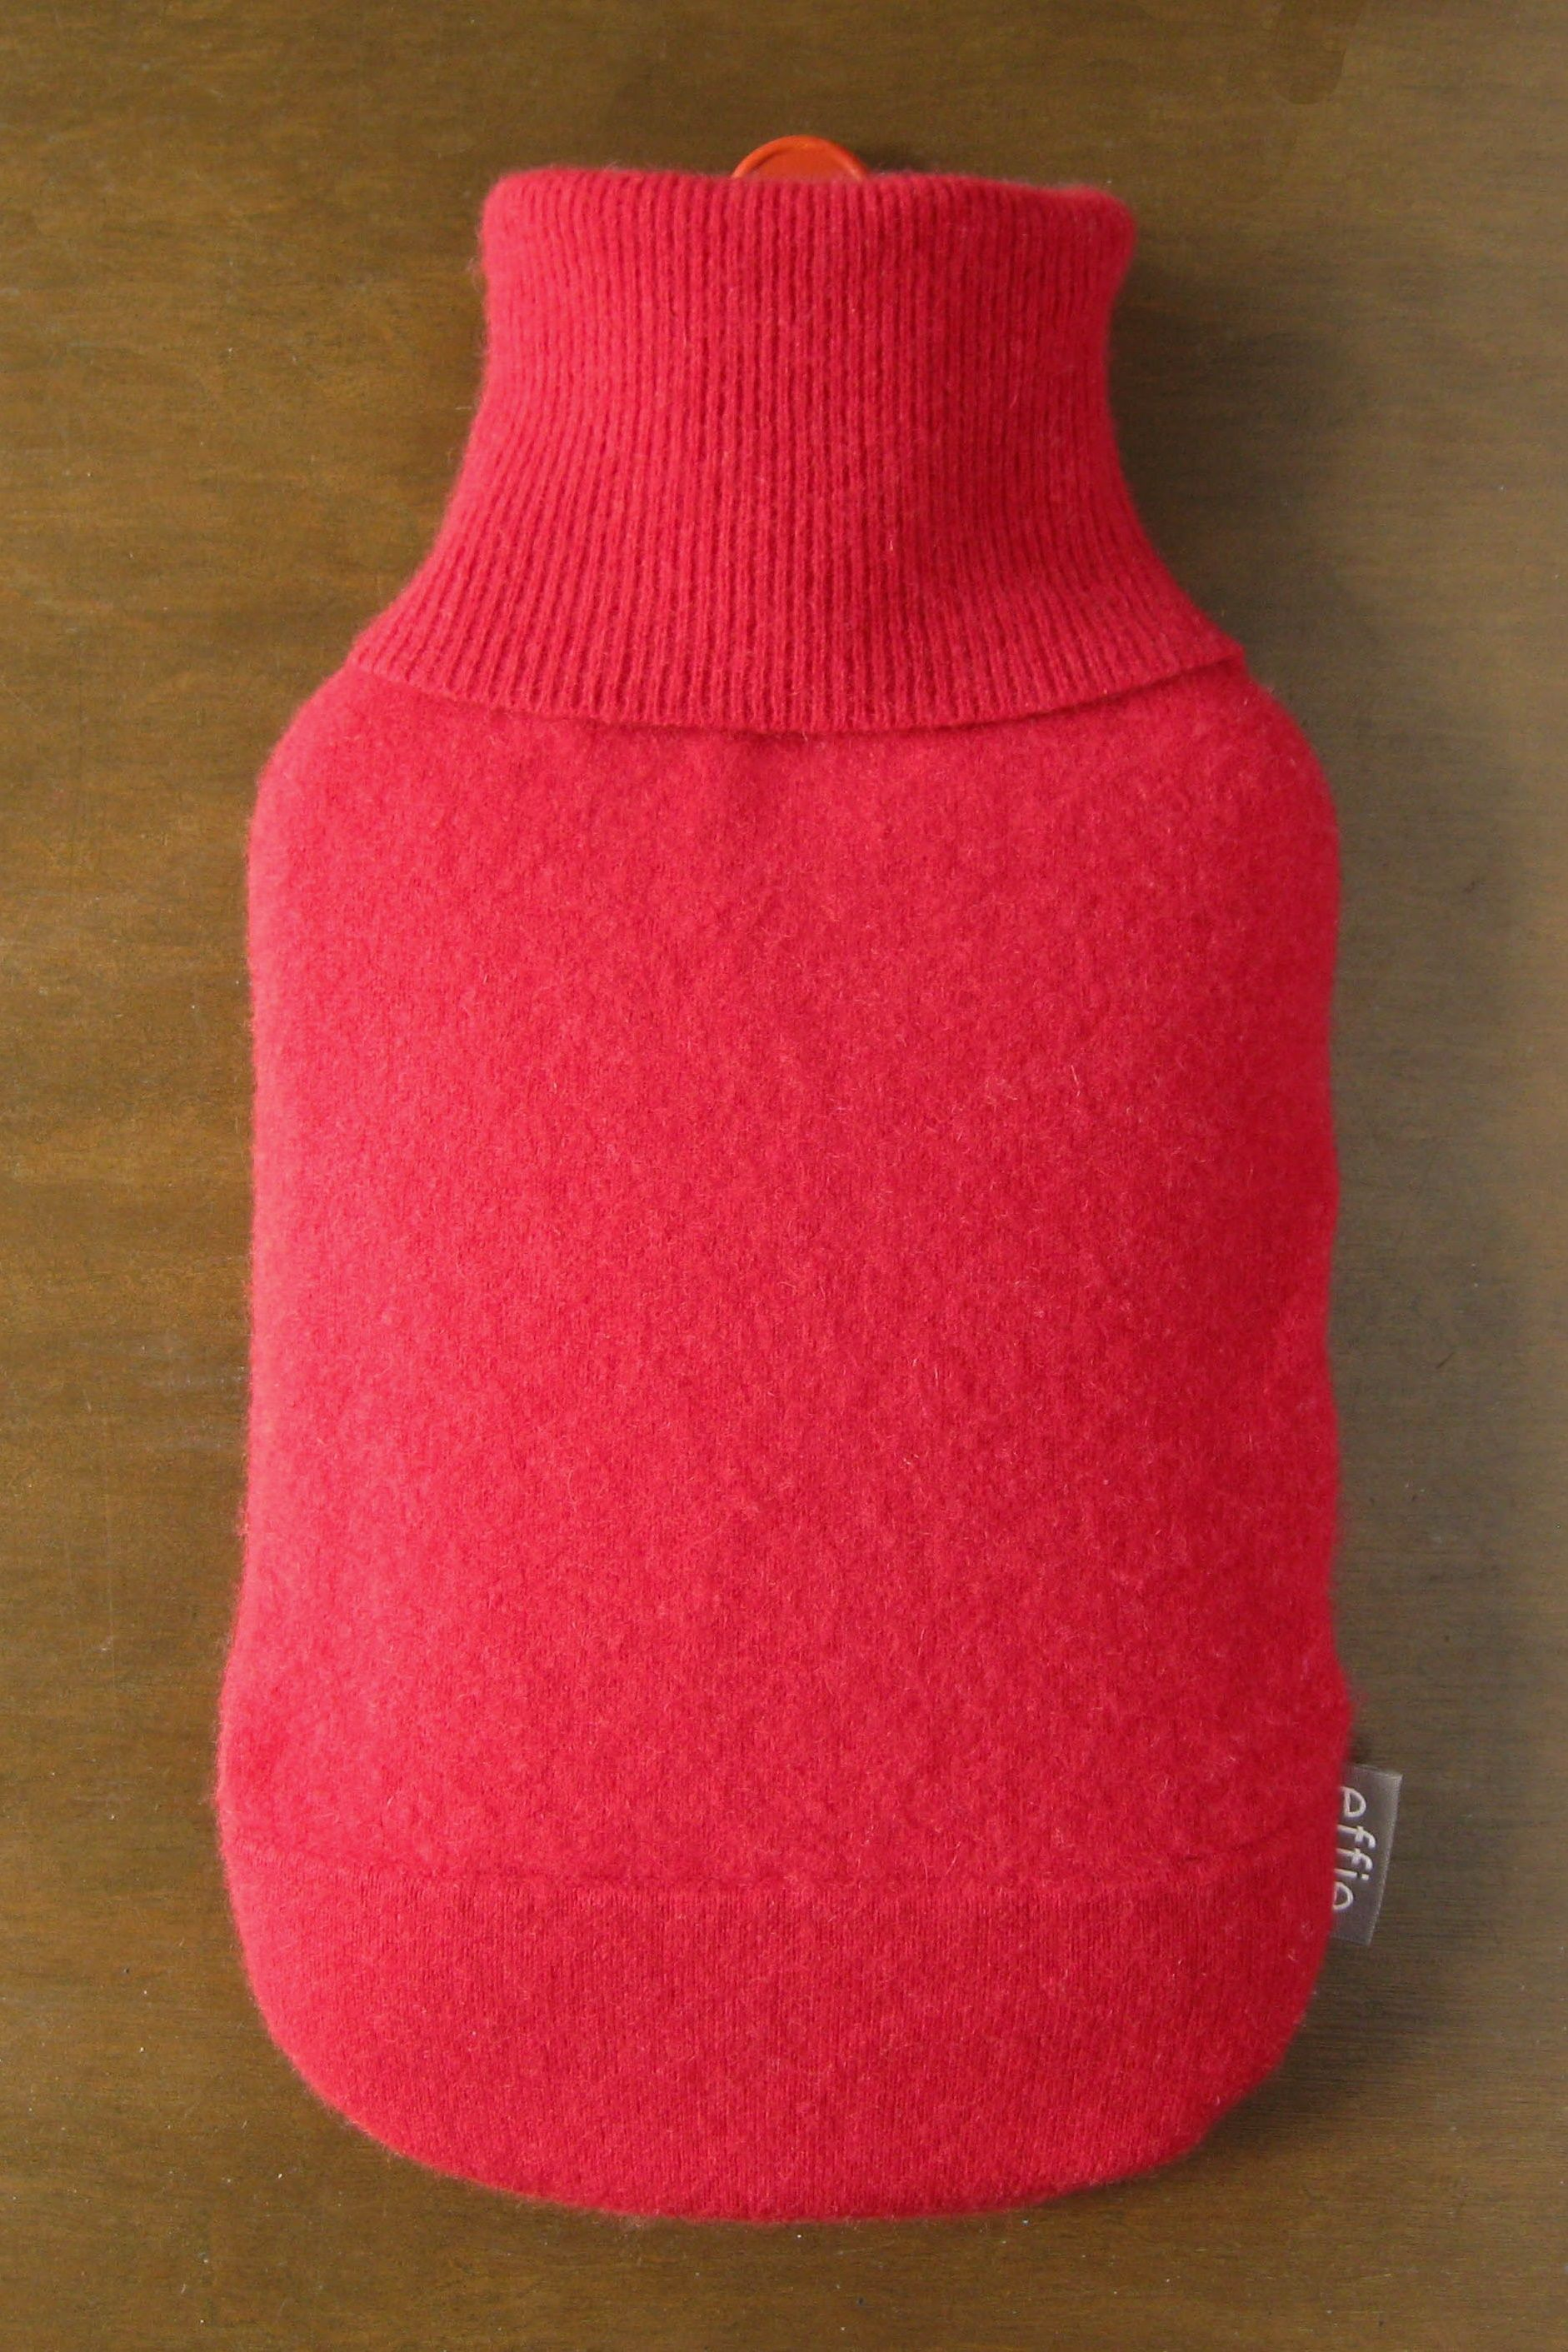 Cashmere Hot Water Bottle Cover. Gifts for Women. Soft Red Cashmere Hot Water Bottle Cozy. 100% Cashmere Cover for Hot Water Bottle